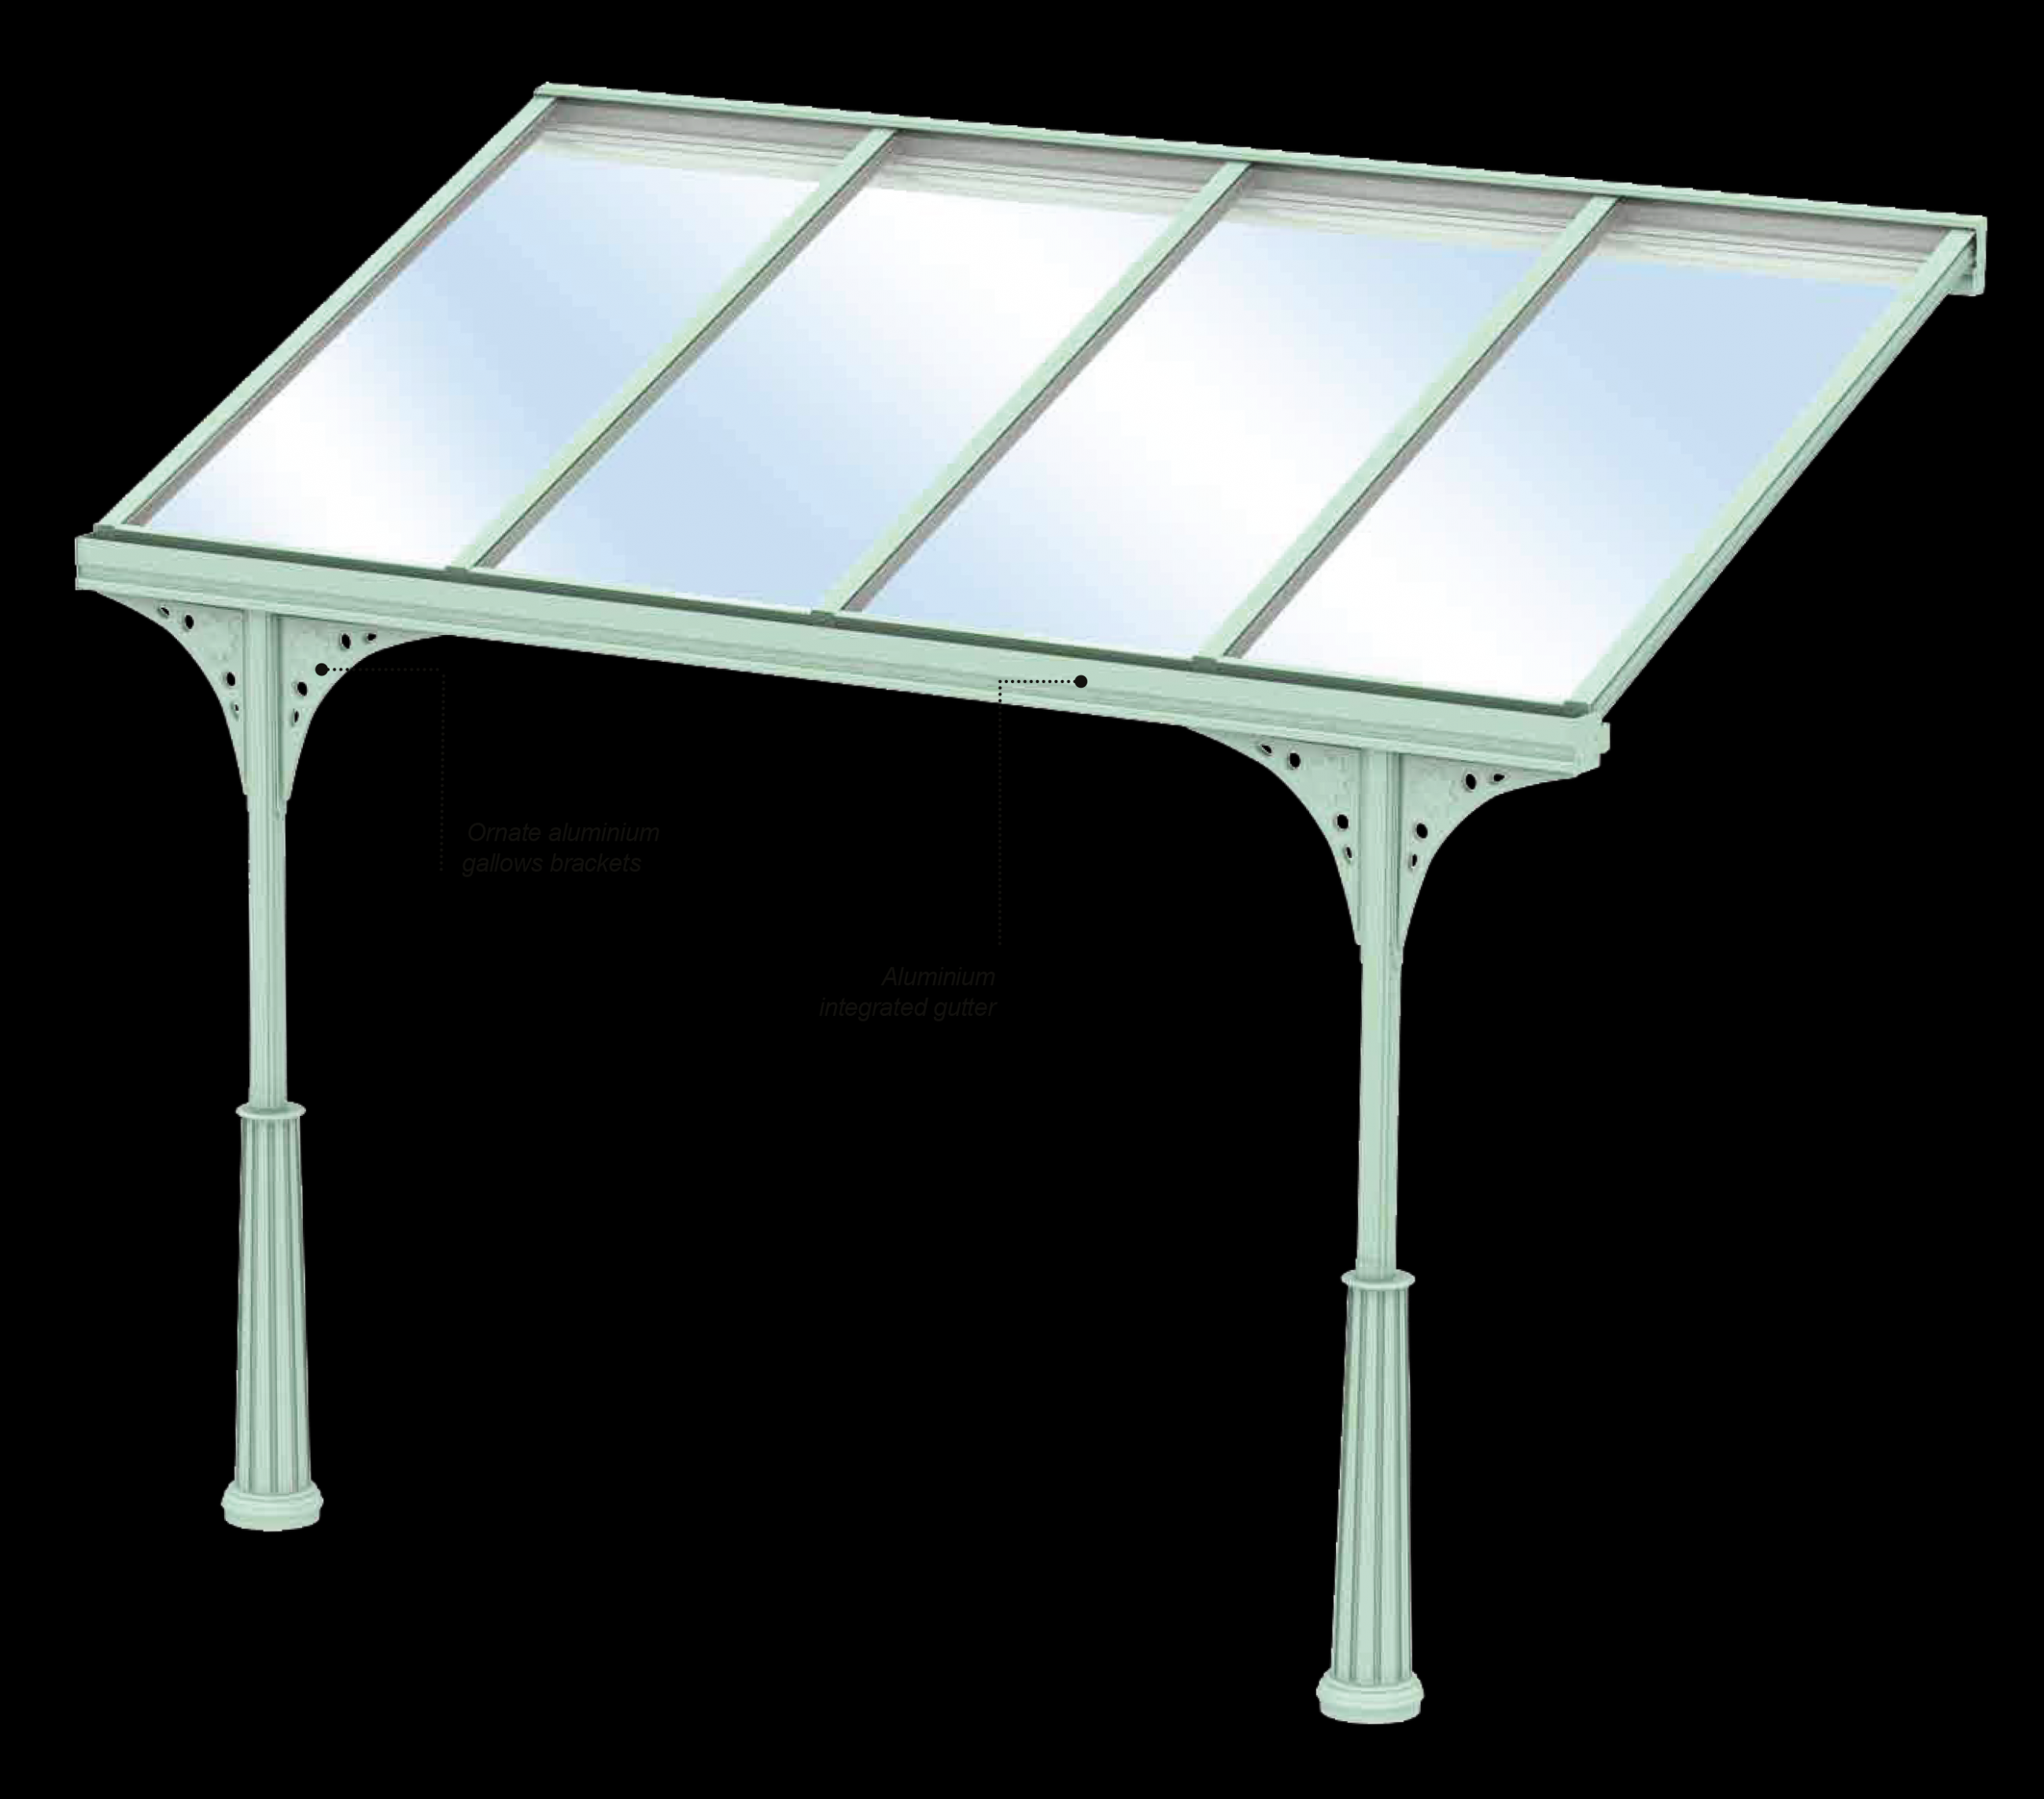 Carport Extra Canopies And Roof Systems Ireland Carport Roof Systems